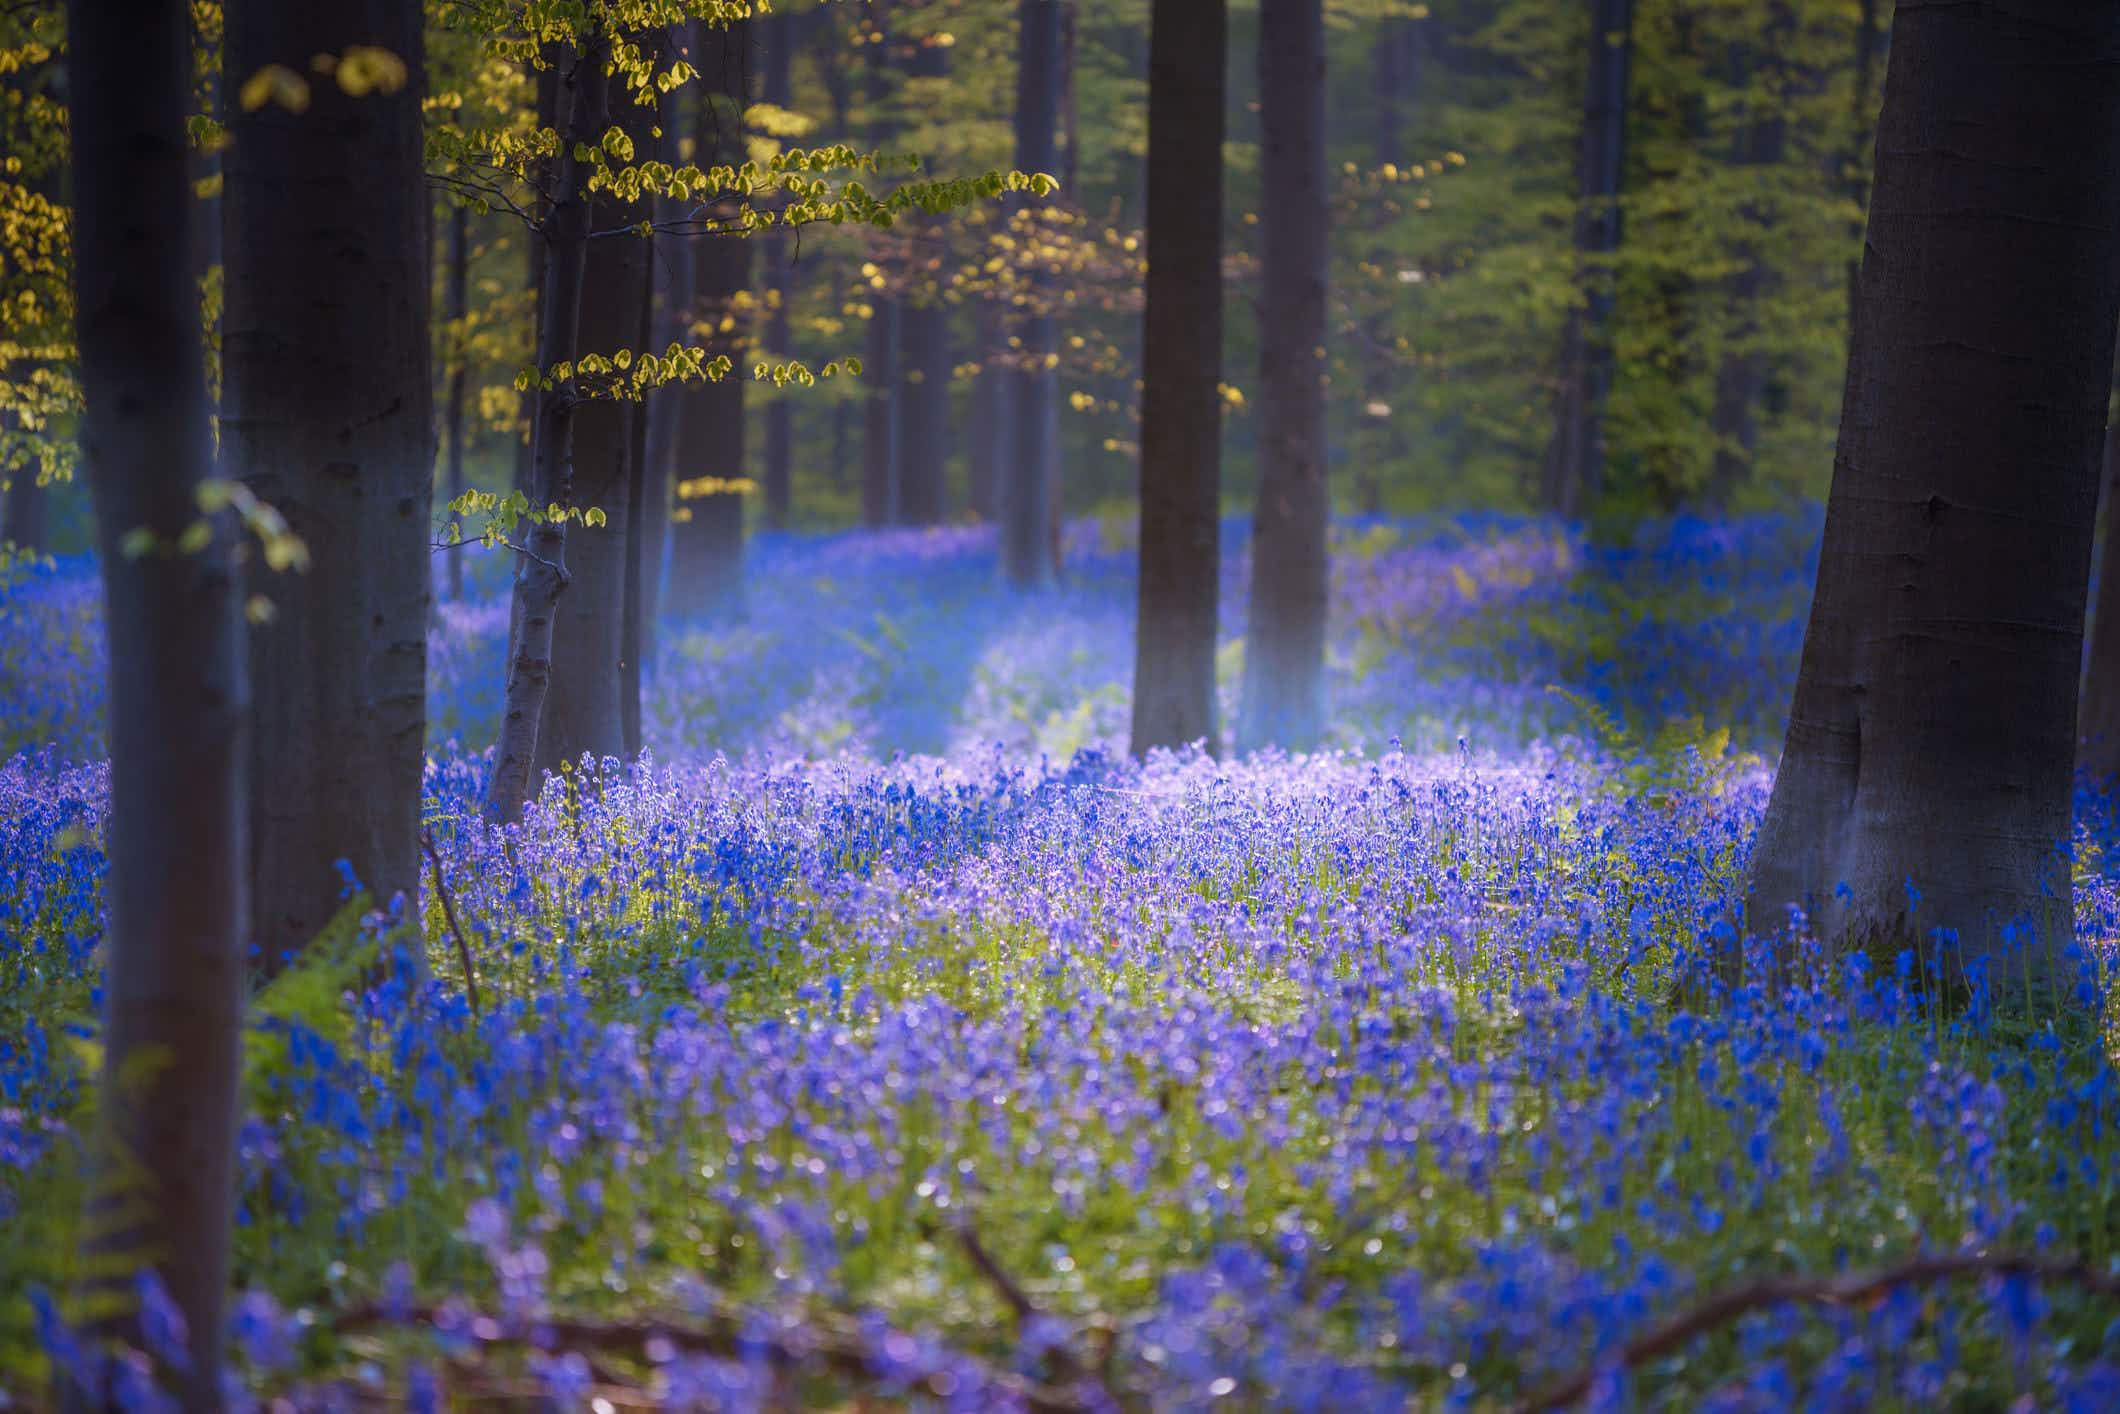 This magical forest in Belgium is covered in blue flowers in spring